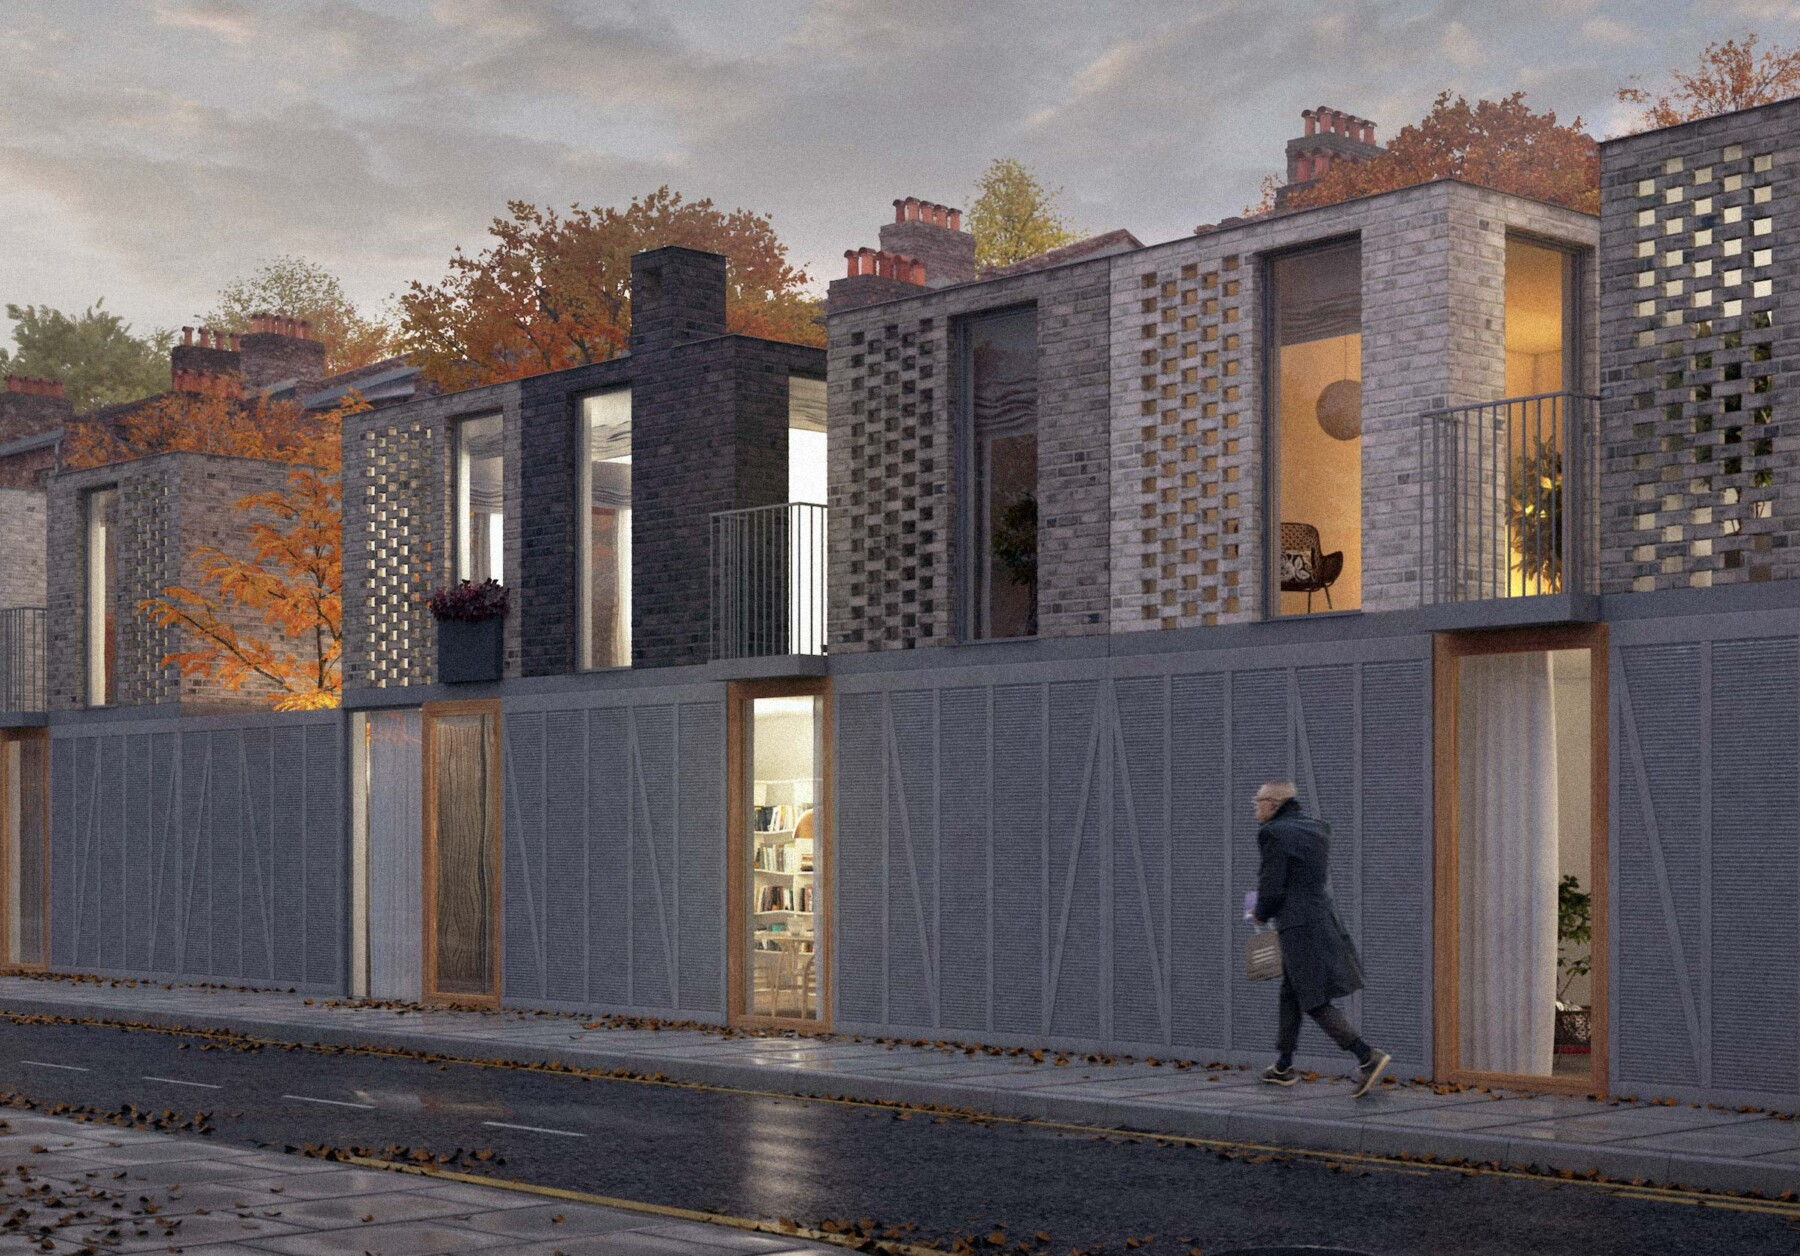 Architect designed Hackney terrace in east London